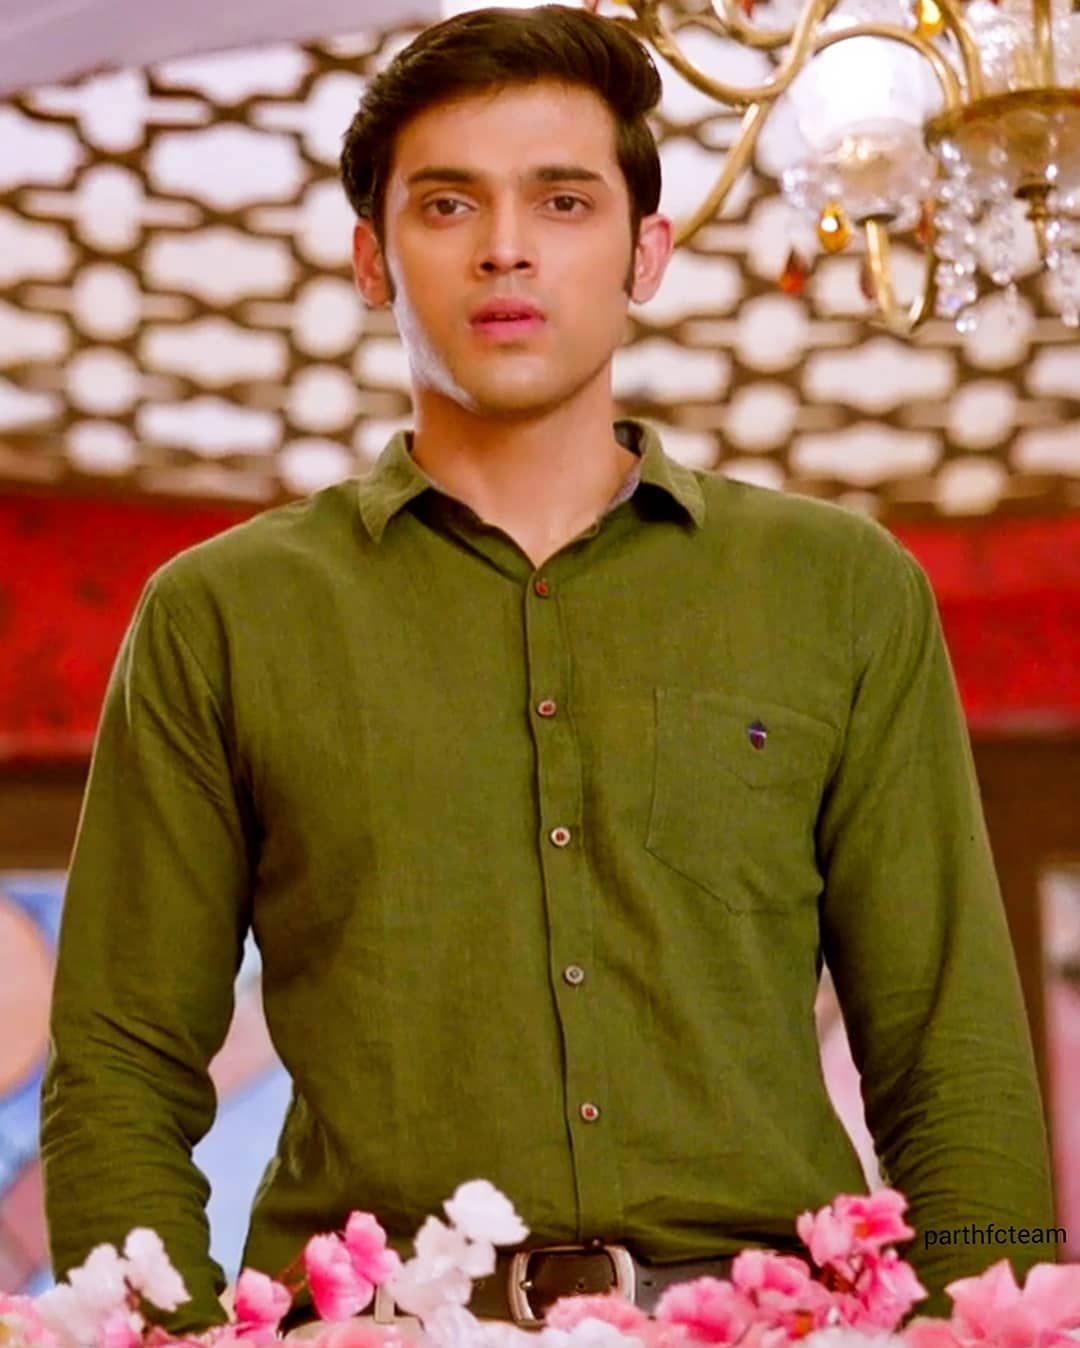 923 Likes, 13 Comments - Parth Samthaan Famsquad (@parthfcteam) on ...